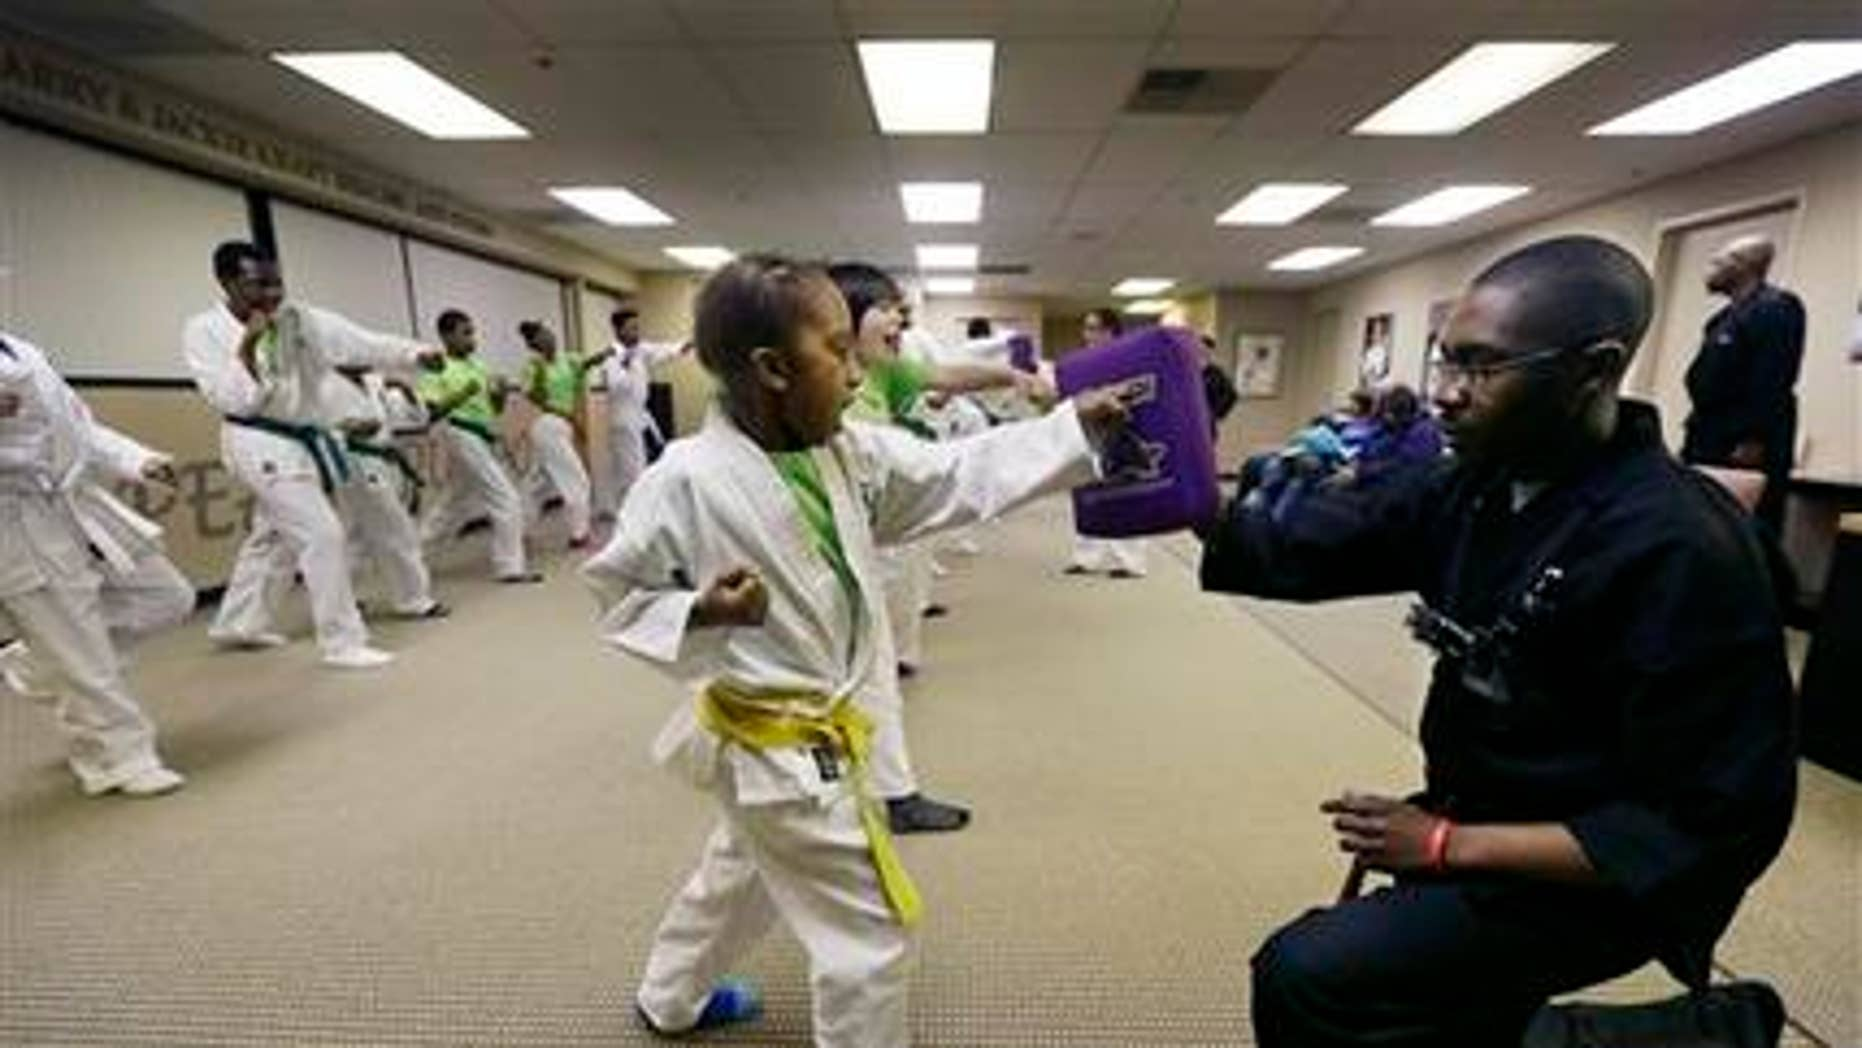 Jan. 28, 2015: In a photo in Southfield, Mich. Jayson Harris punches a pad held by Michael Hunt during the Kids Kicking Cancer class.